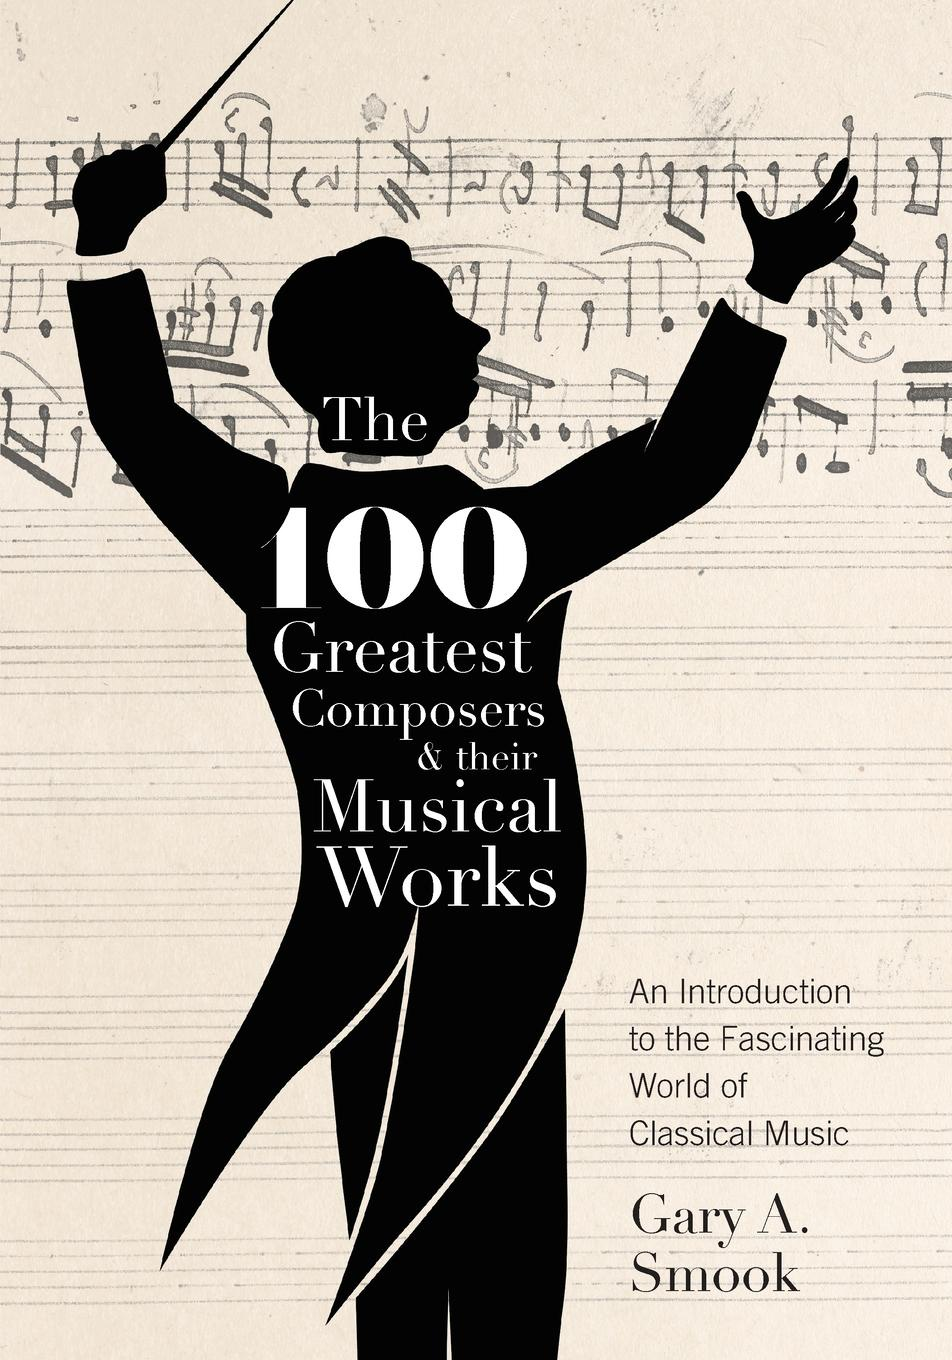 Gary A. Smook The 100 Greatest Composers and Their Musical Works. An Introduction to the Fascinating World of Classical Music